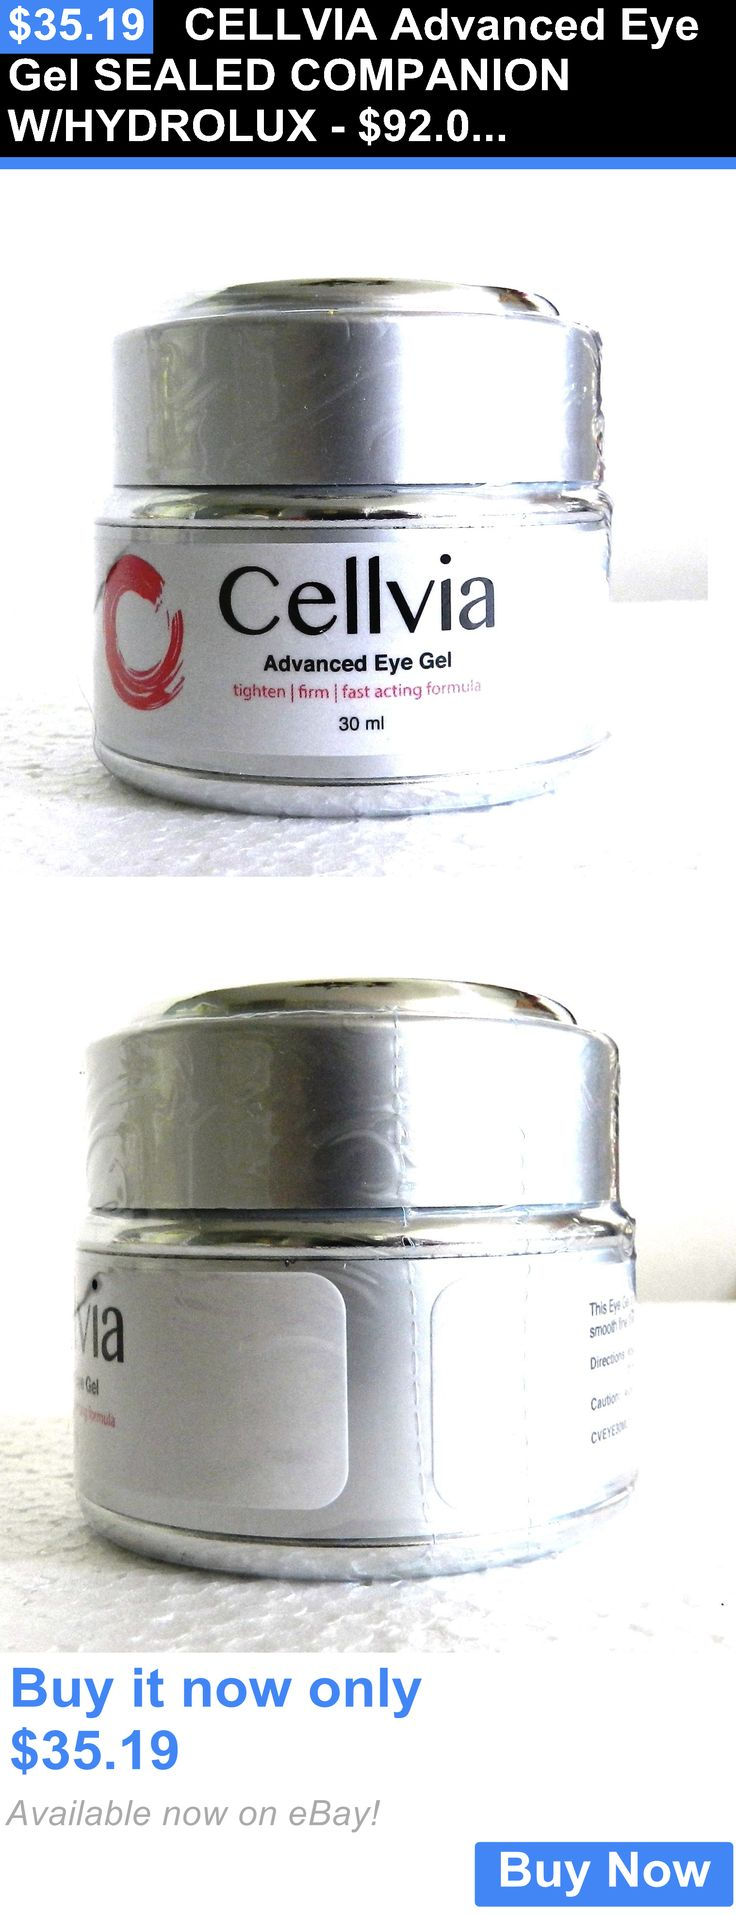 Lip Plumper: Cellvia Advanced Eye Gel Sealed Companion W/Hydrolux - $92.00 Made In Usa BUY IT NOW ONLY: $35.19